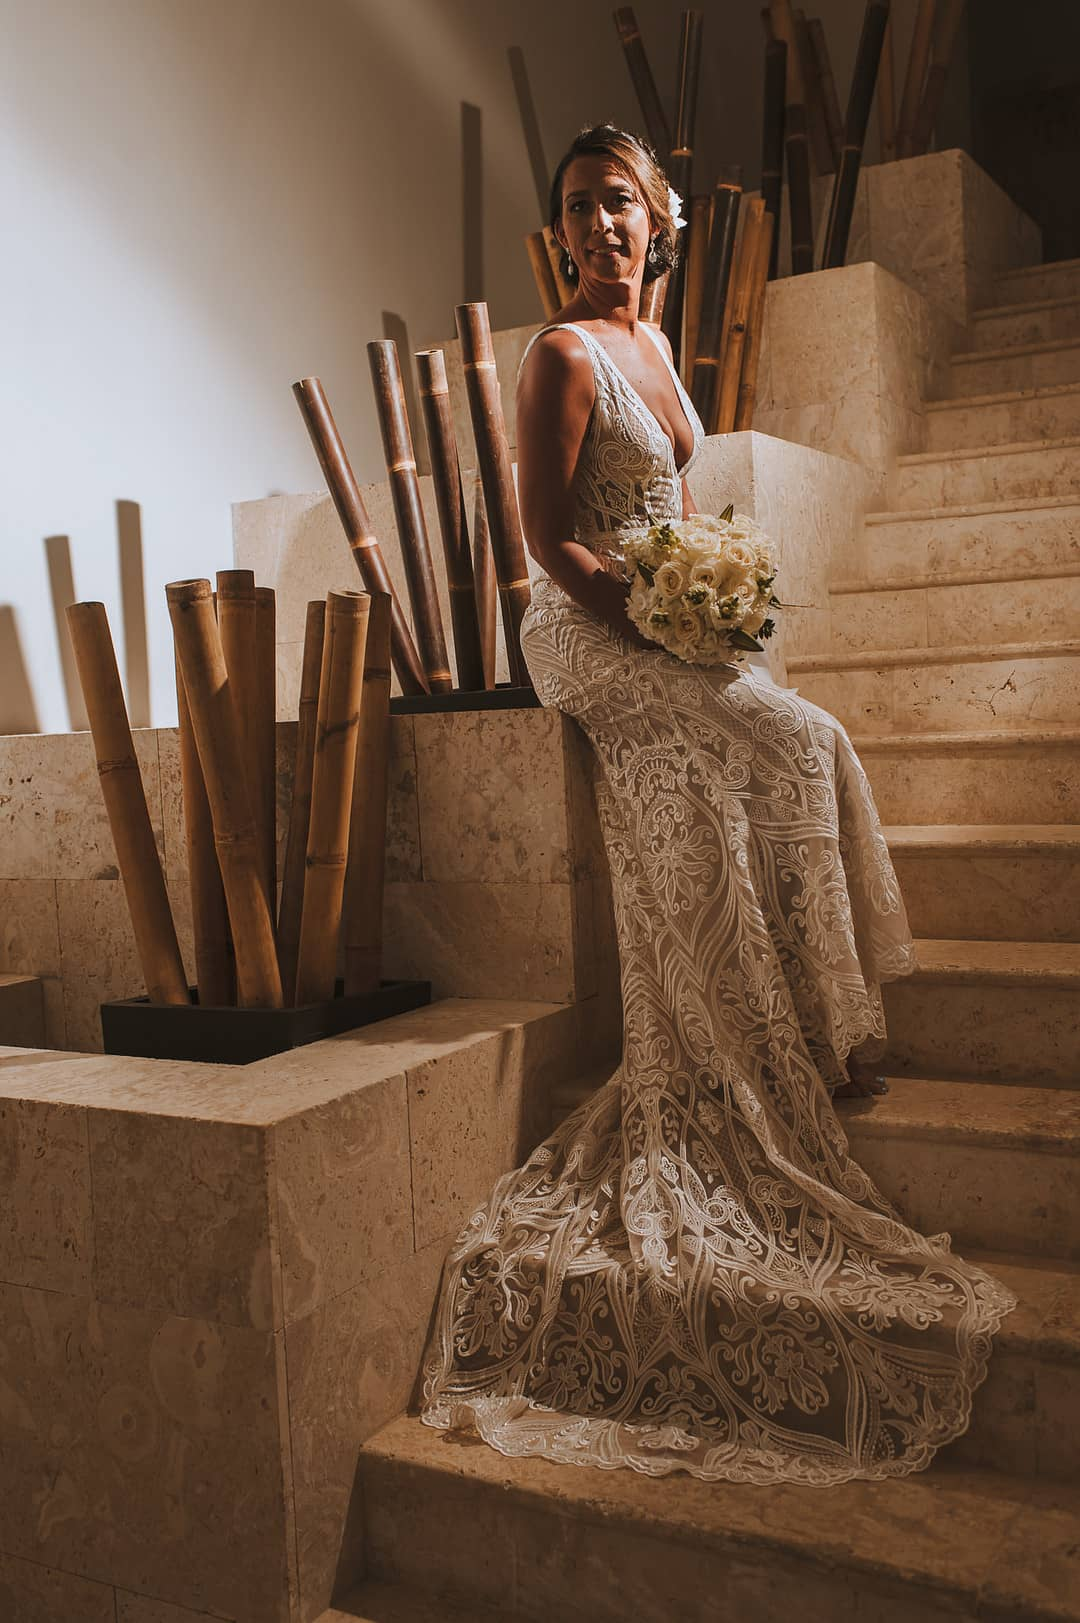 Kyla & Shane's Epic Destination Wedding at Sanctuary Cap Cana, Photography by Green Apple Photography for Destination Wedding Blog Adriana Weddings